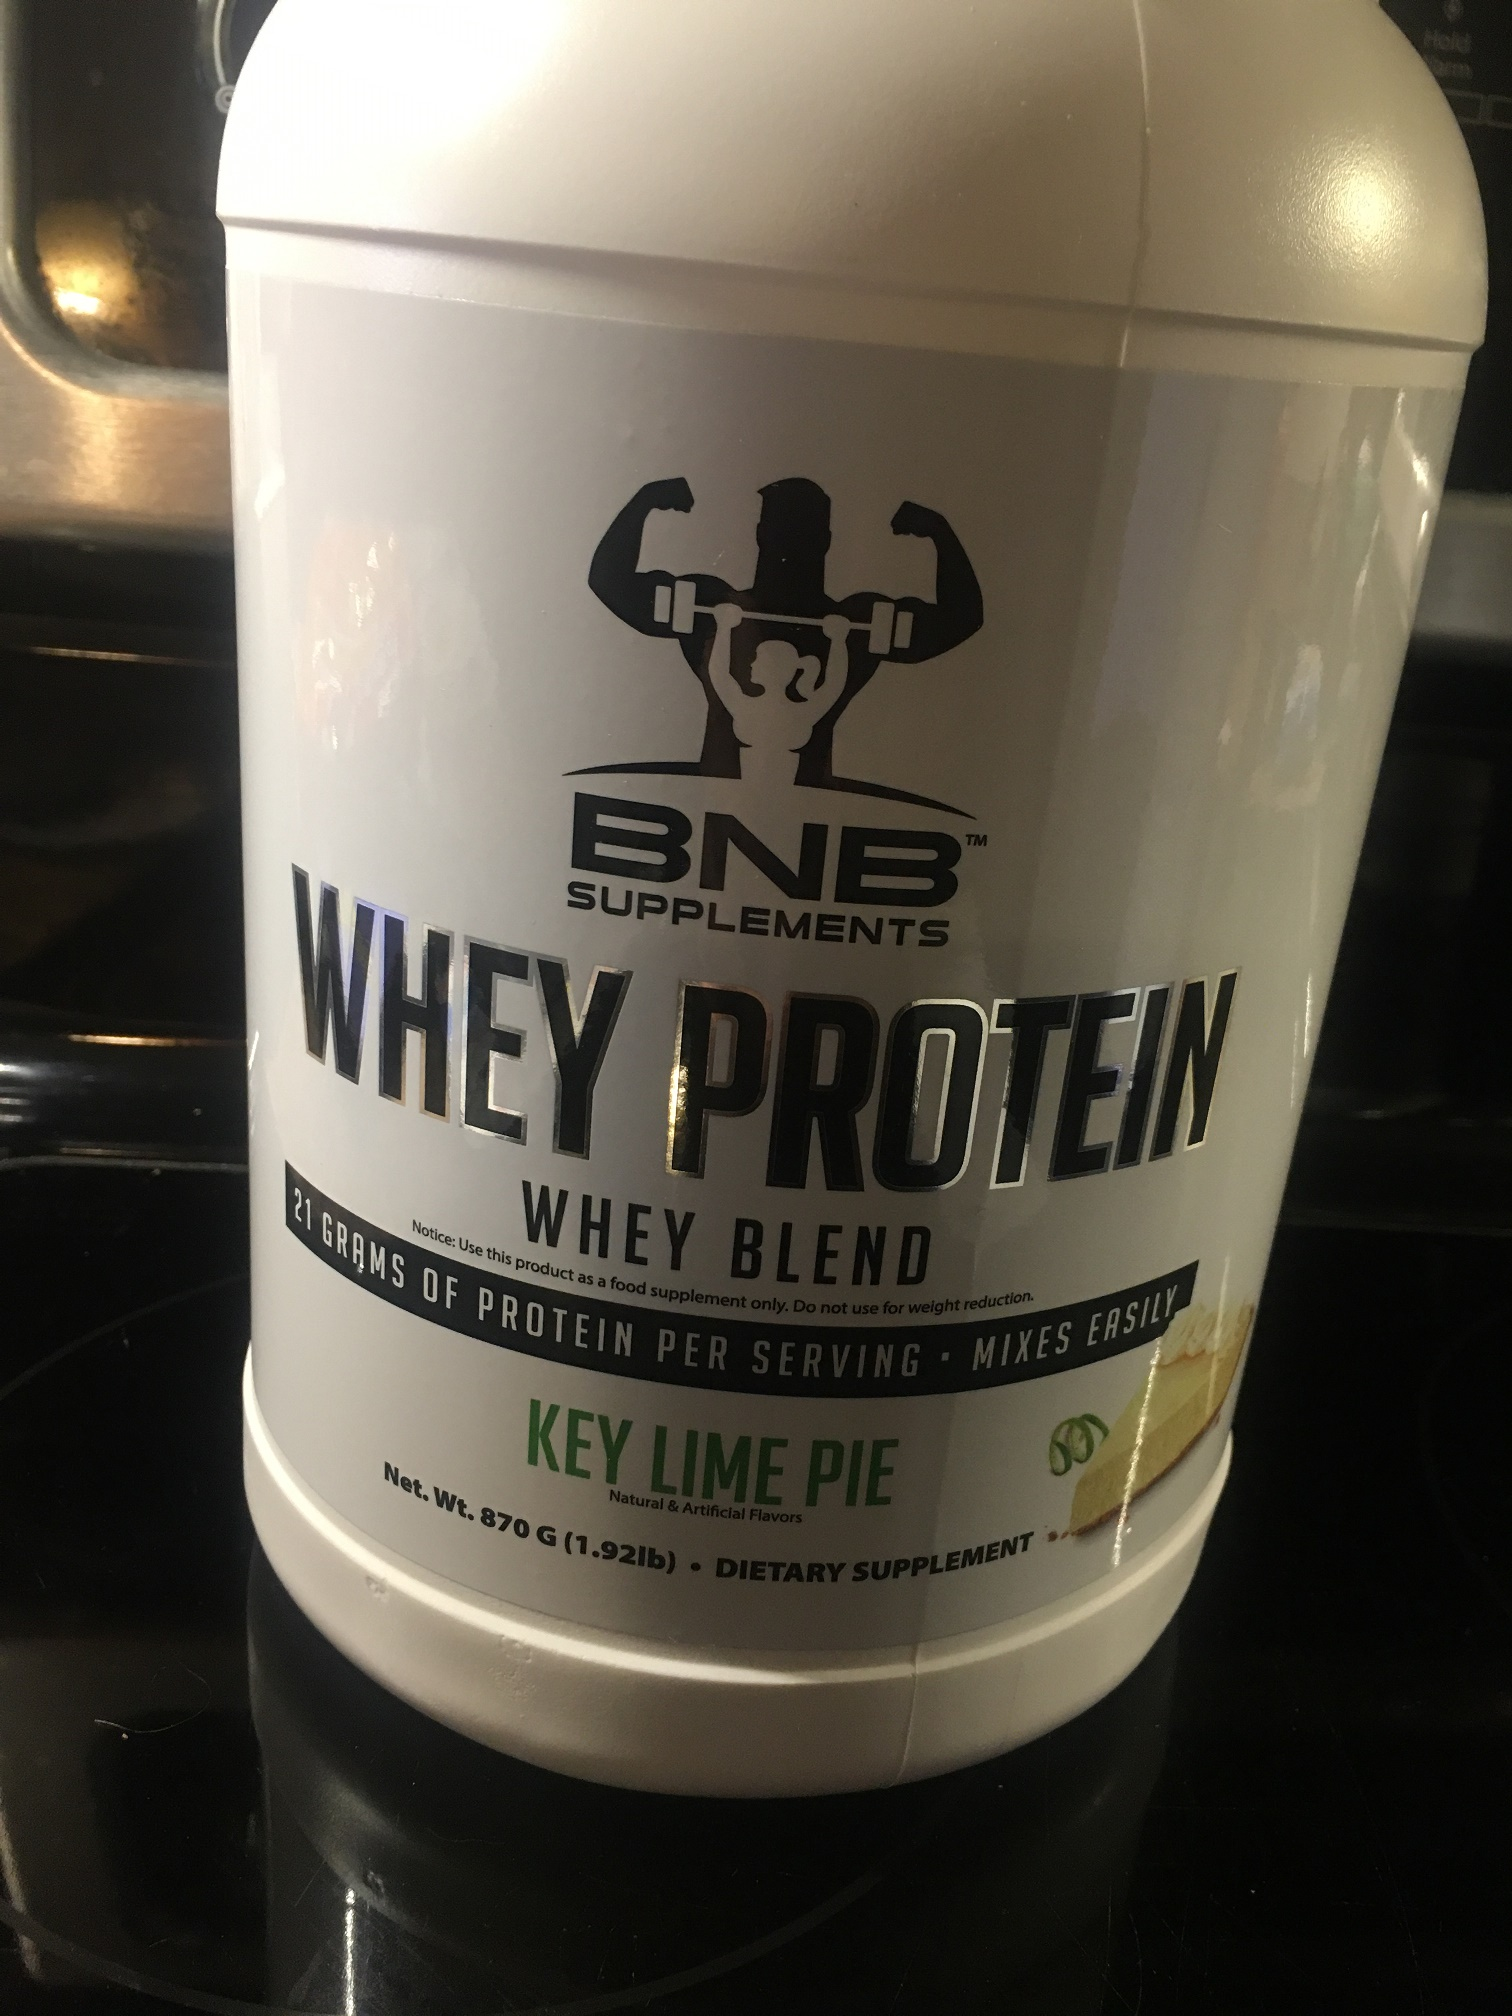 Excellent source of protein and tasty too!